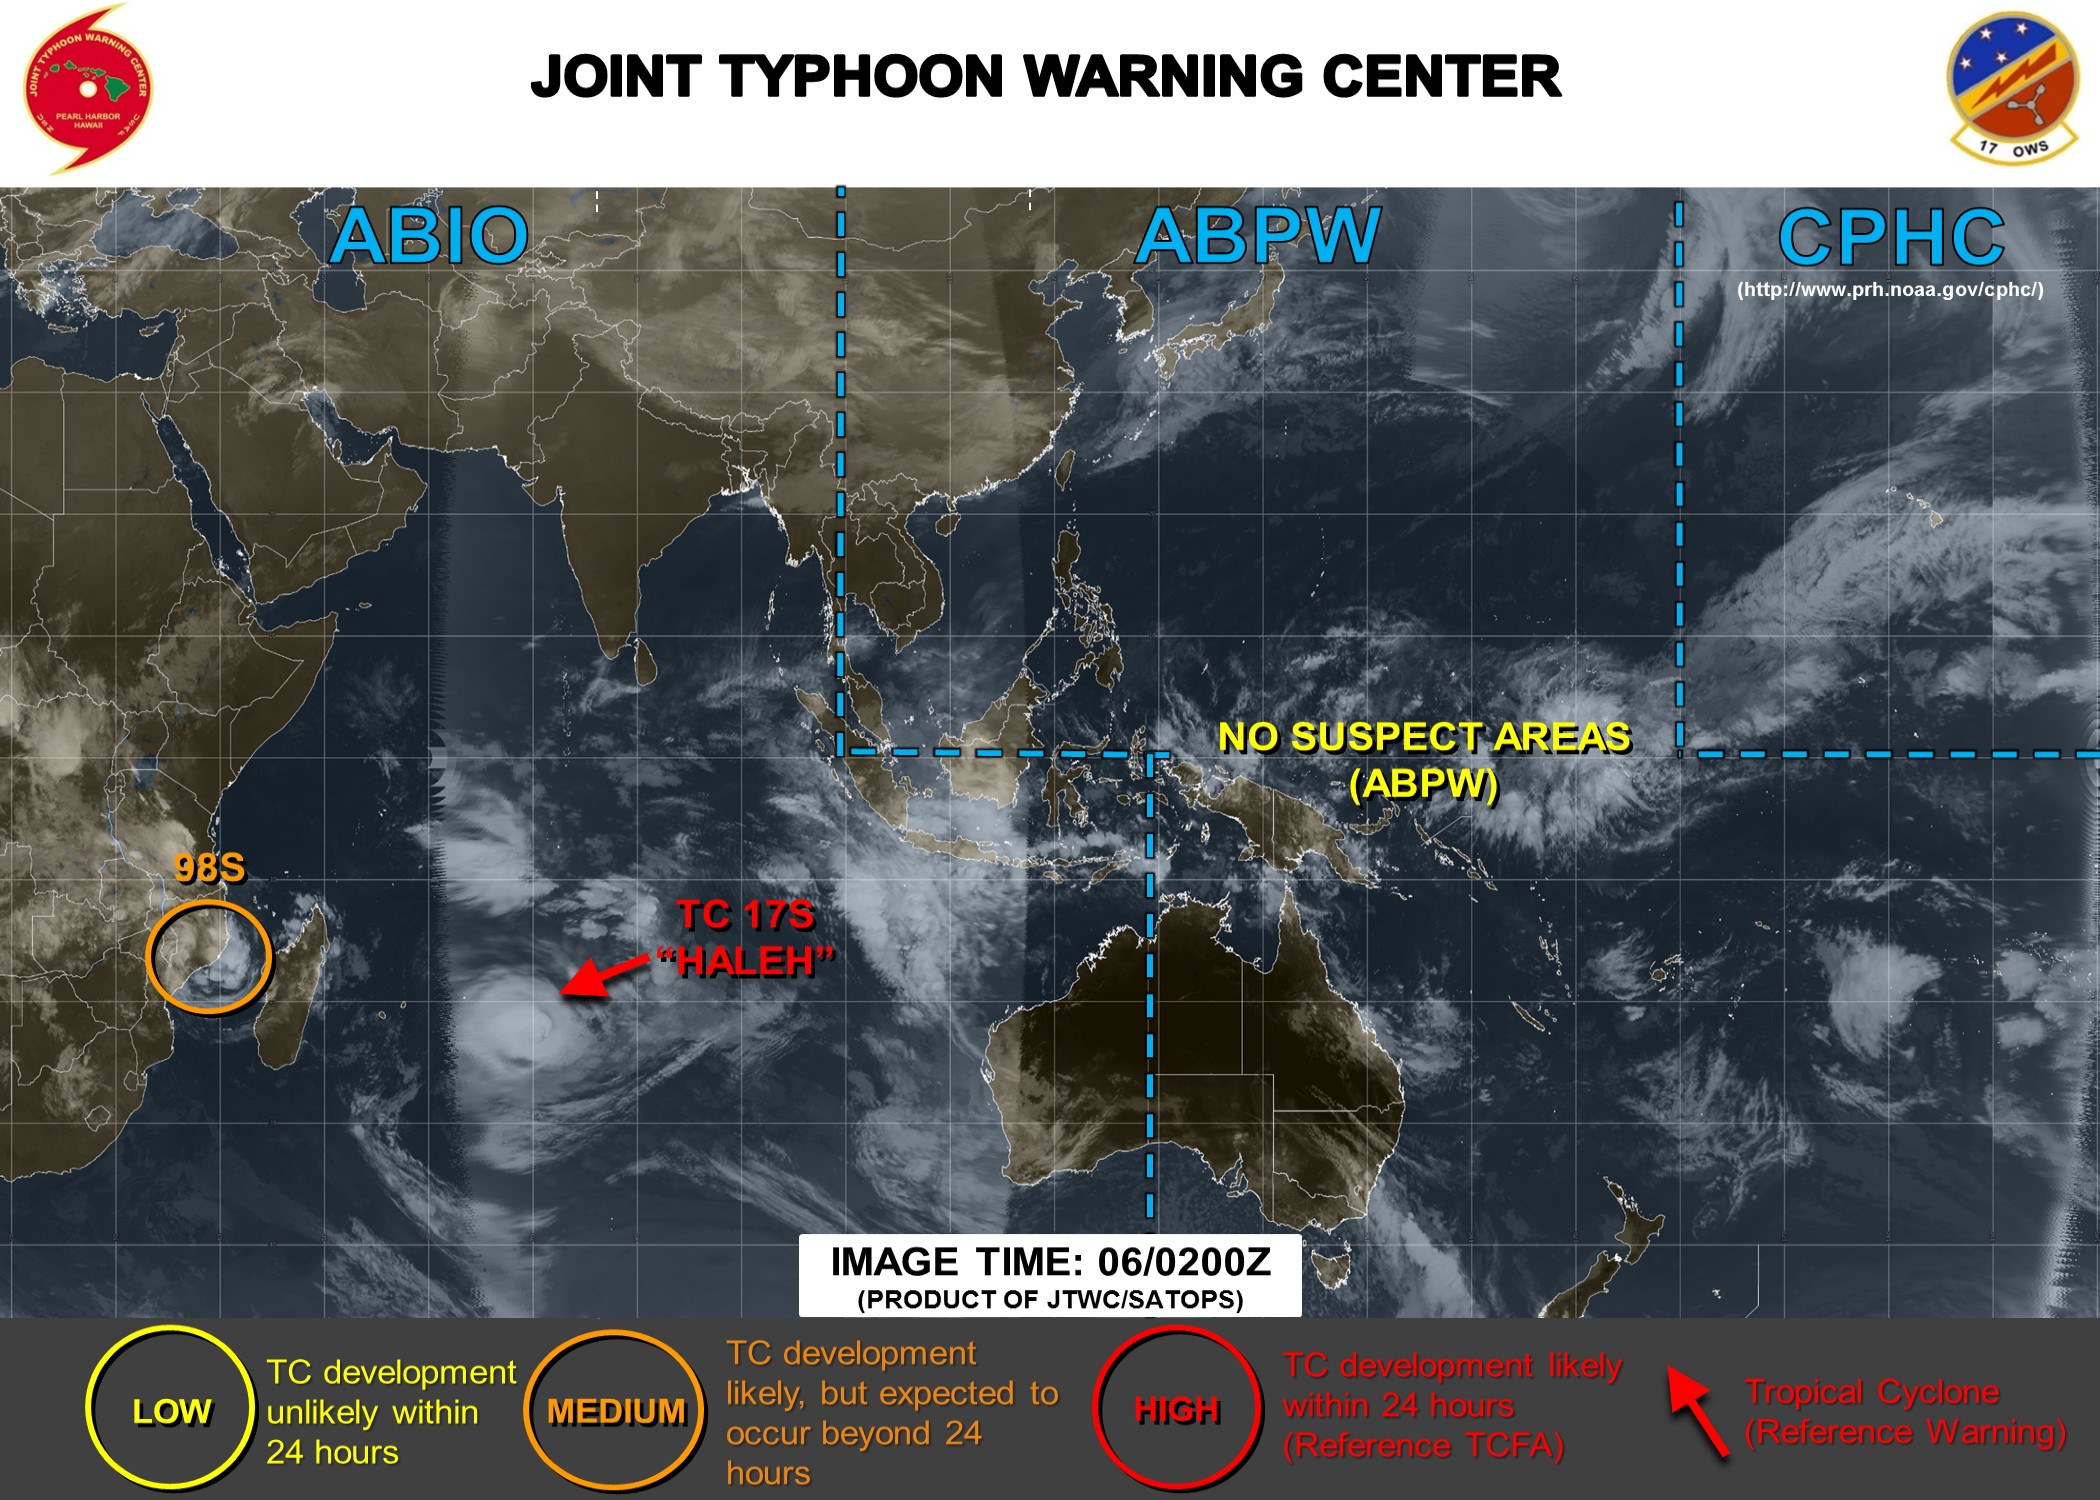 03UTC: South Indian: INVEST 98S under surveillance over the MOZ Channel